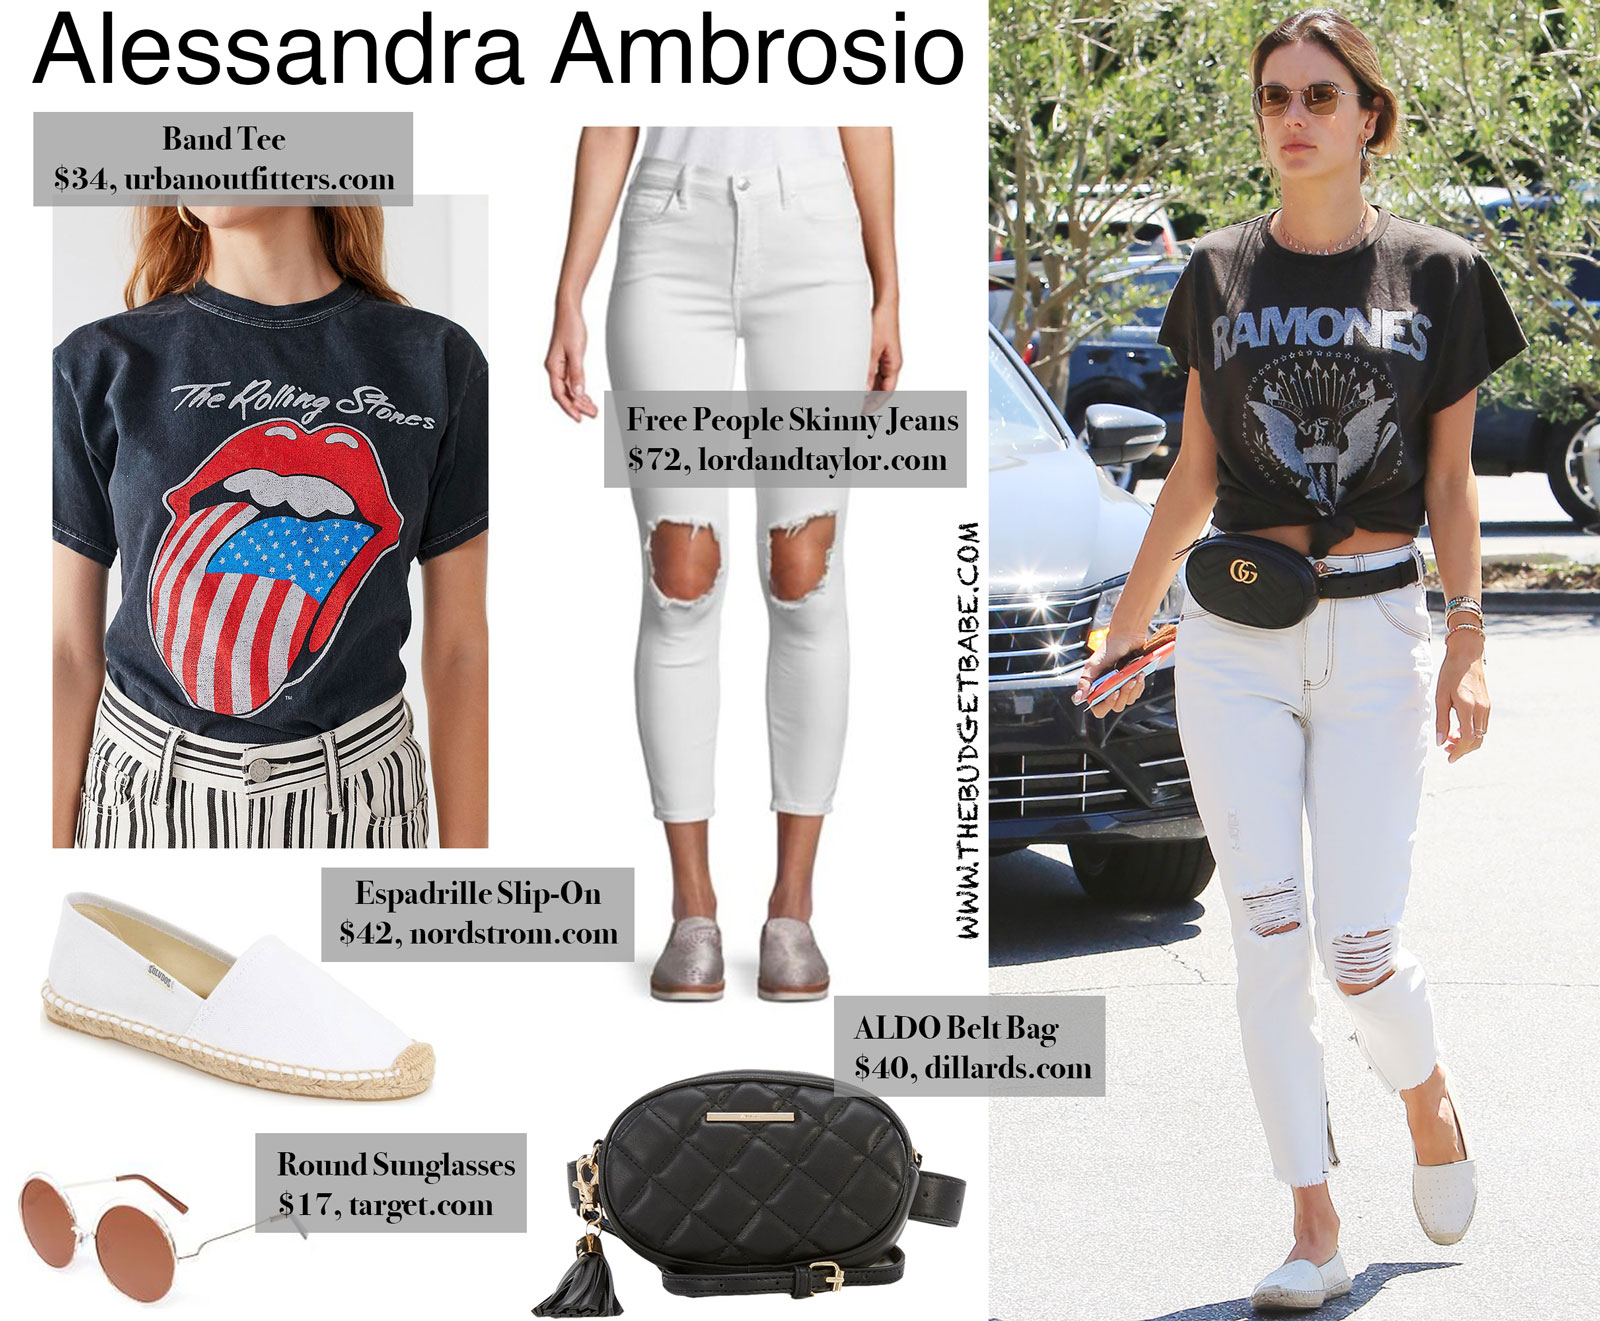 25854b92485679 Alessandra Ambrosio's Gucci Belt Bag and Band Tee Look for Less ...